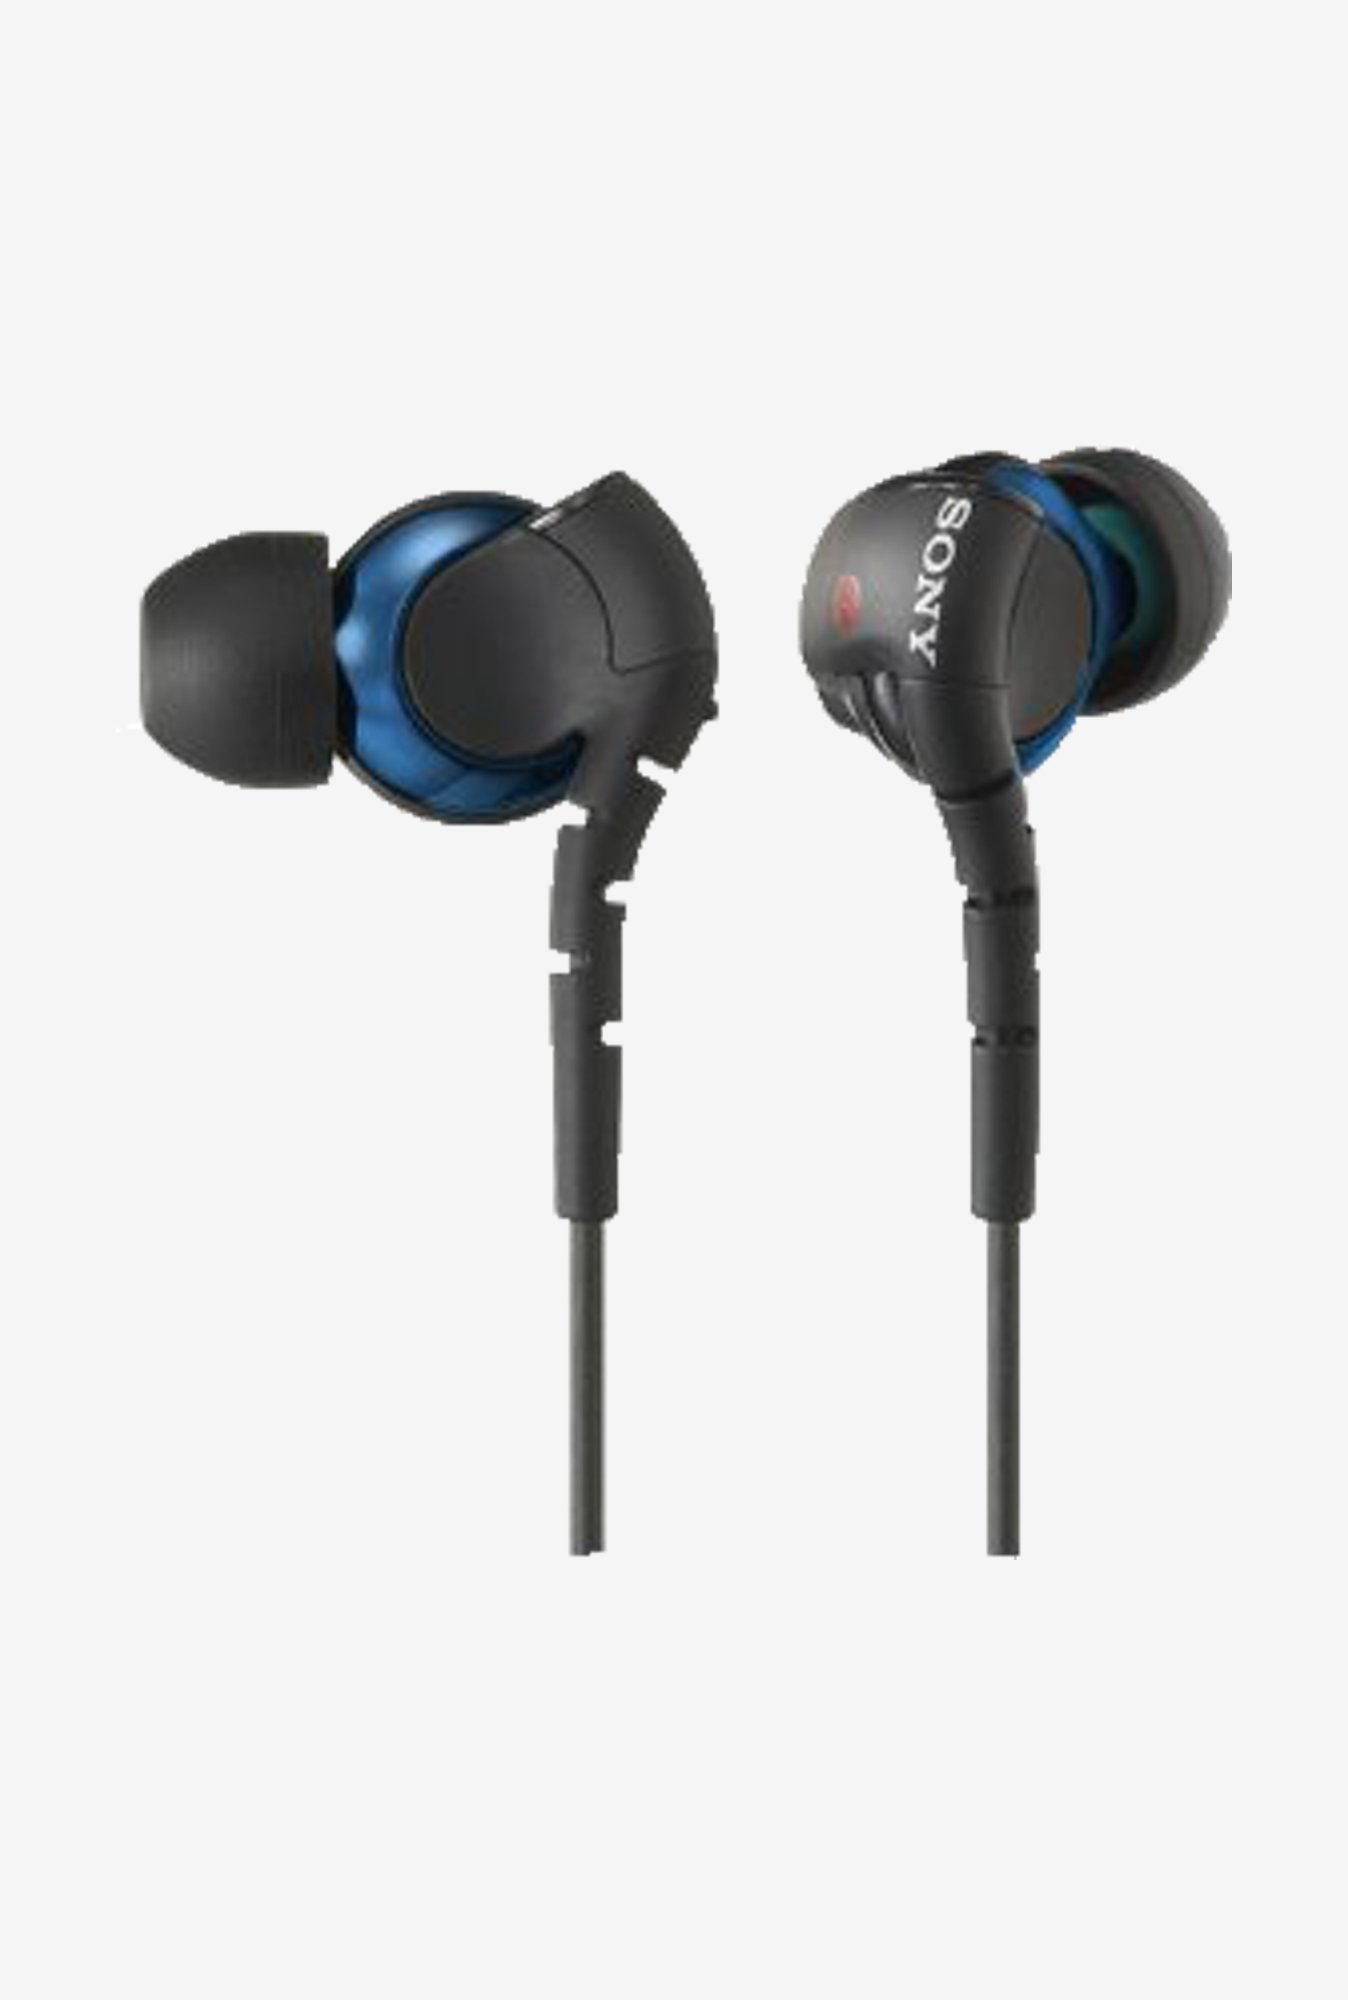 Sony Stereo Headphones MDR-EX310SL BLUE